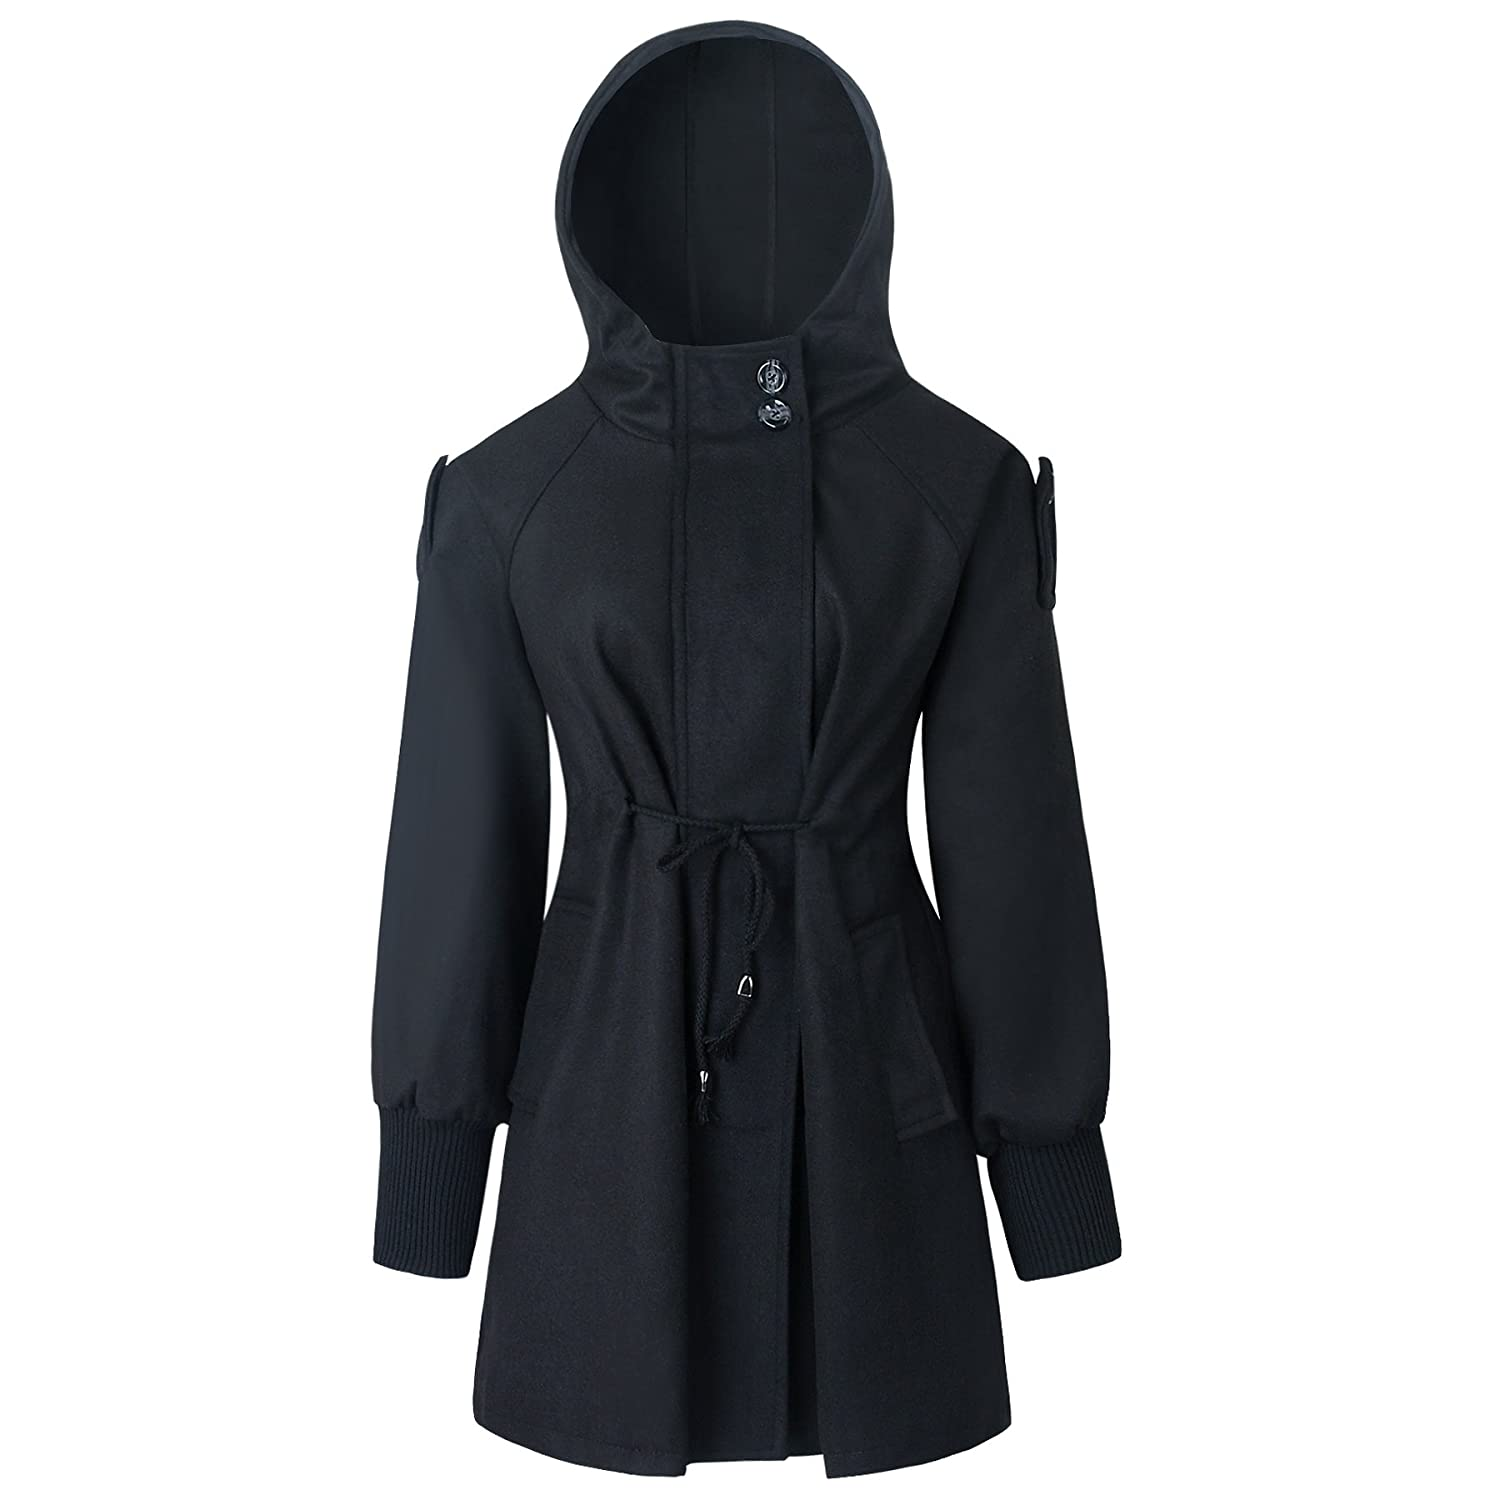 Caracilia Women's Collect Waist Slim Jacket Hooded Wool Outwear Coat With Belt